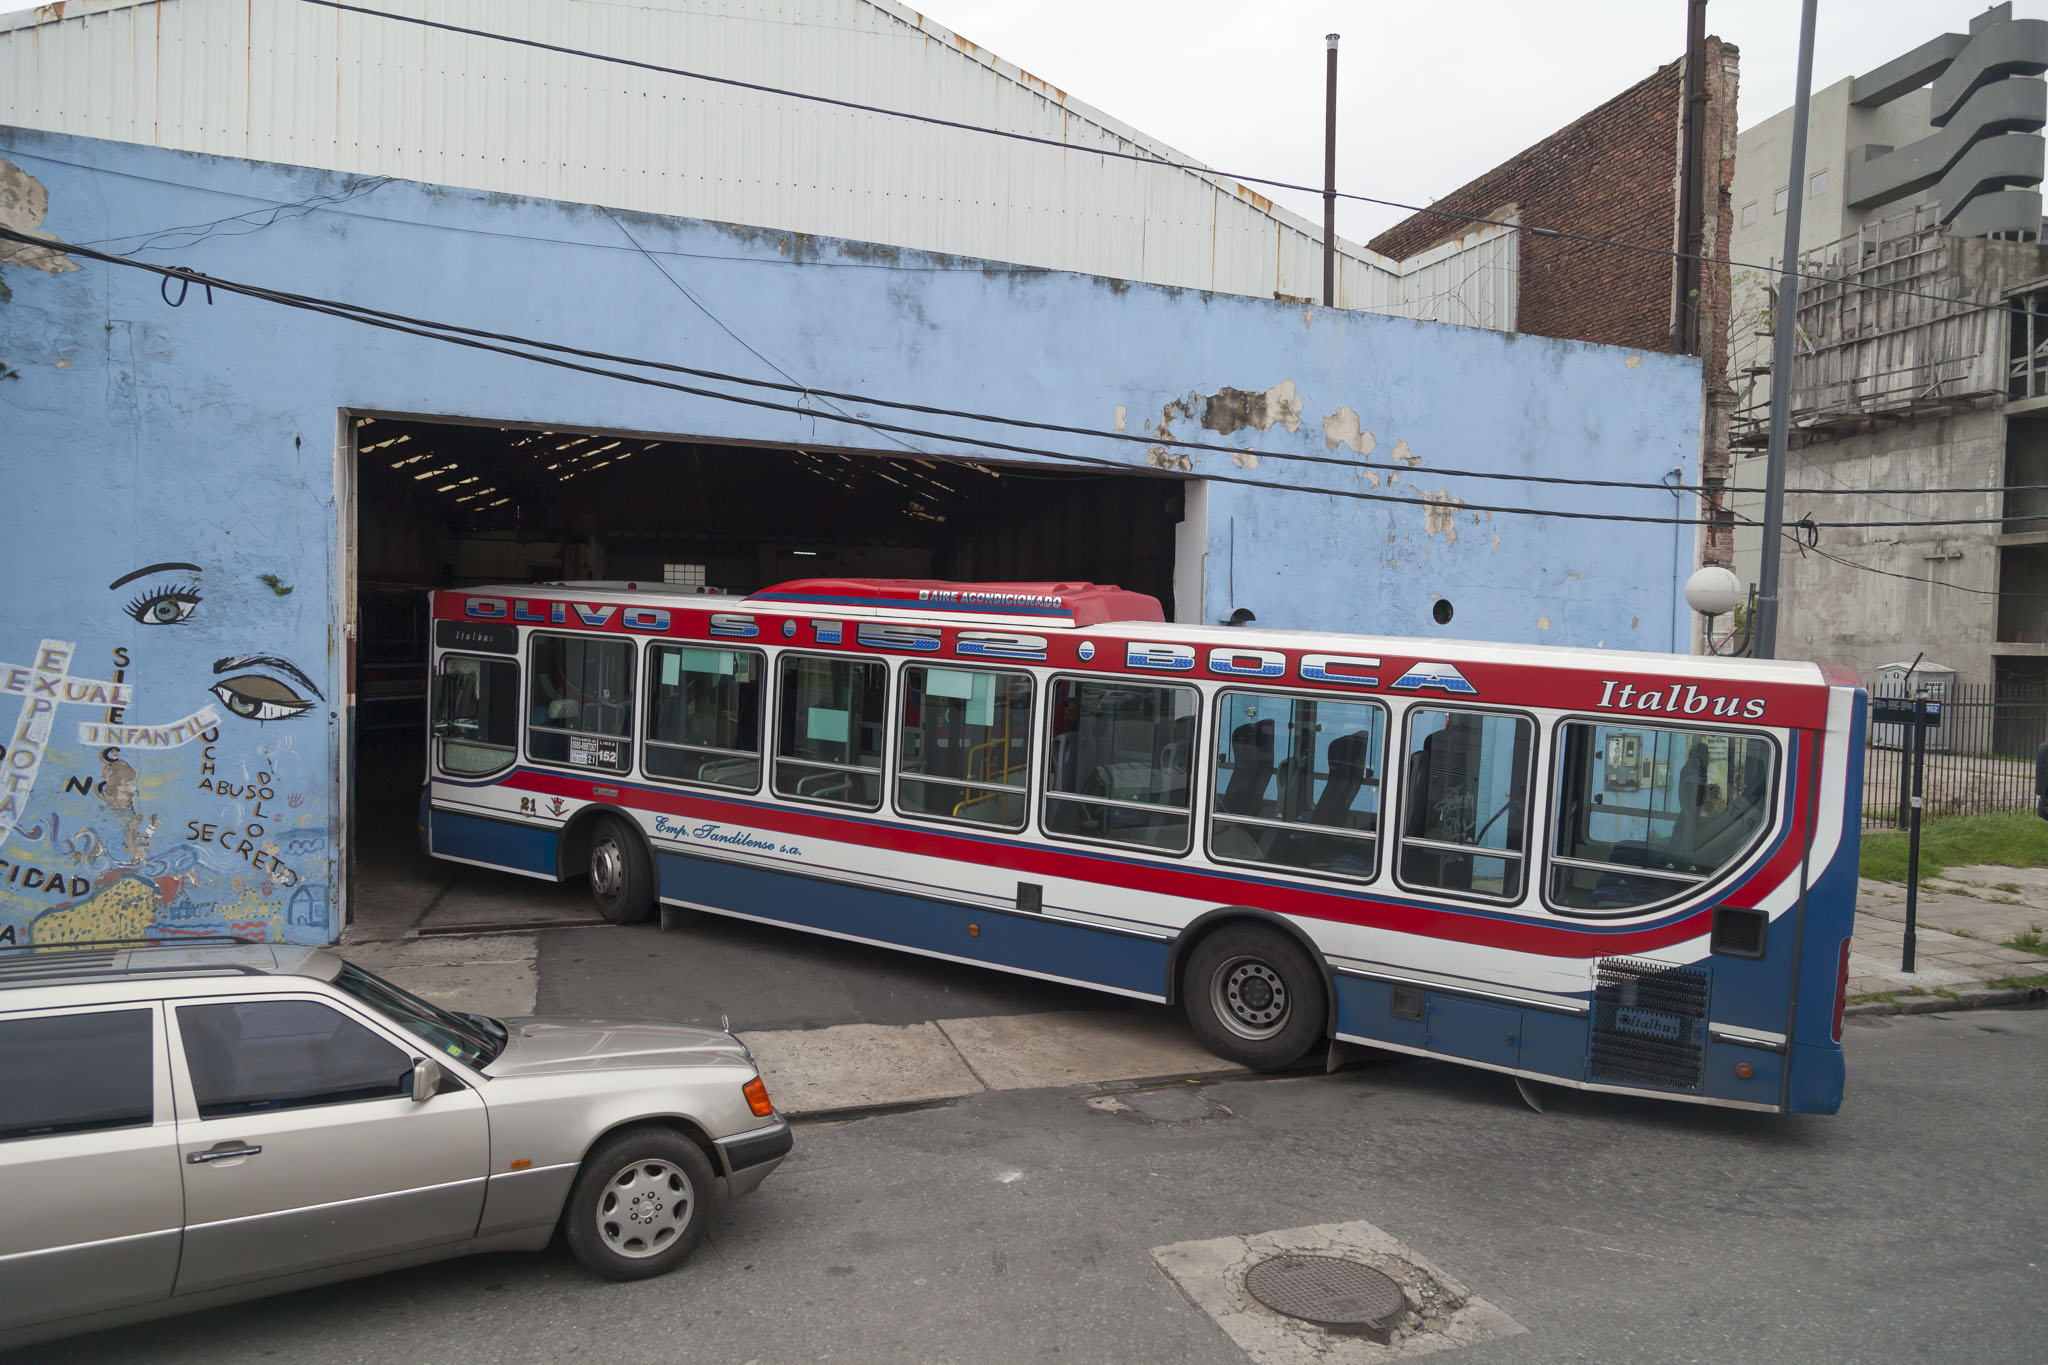 A Bus From A Coach